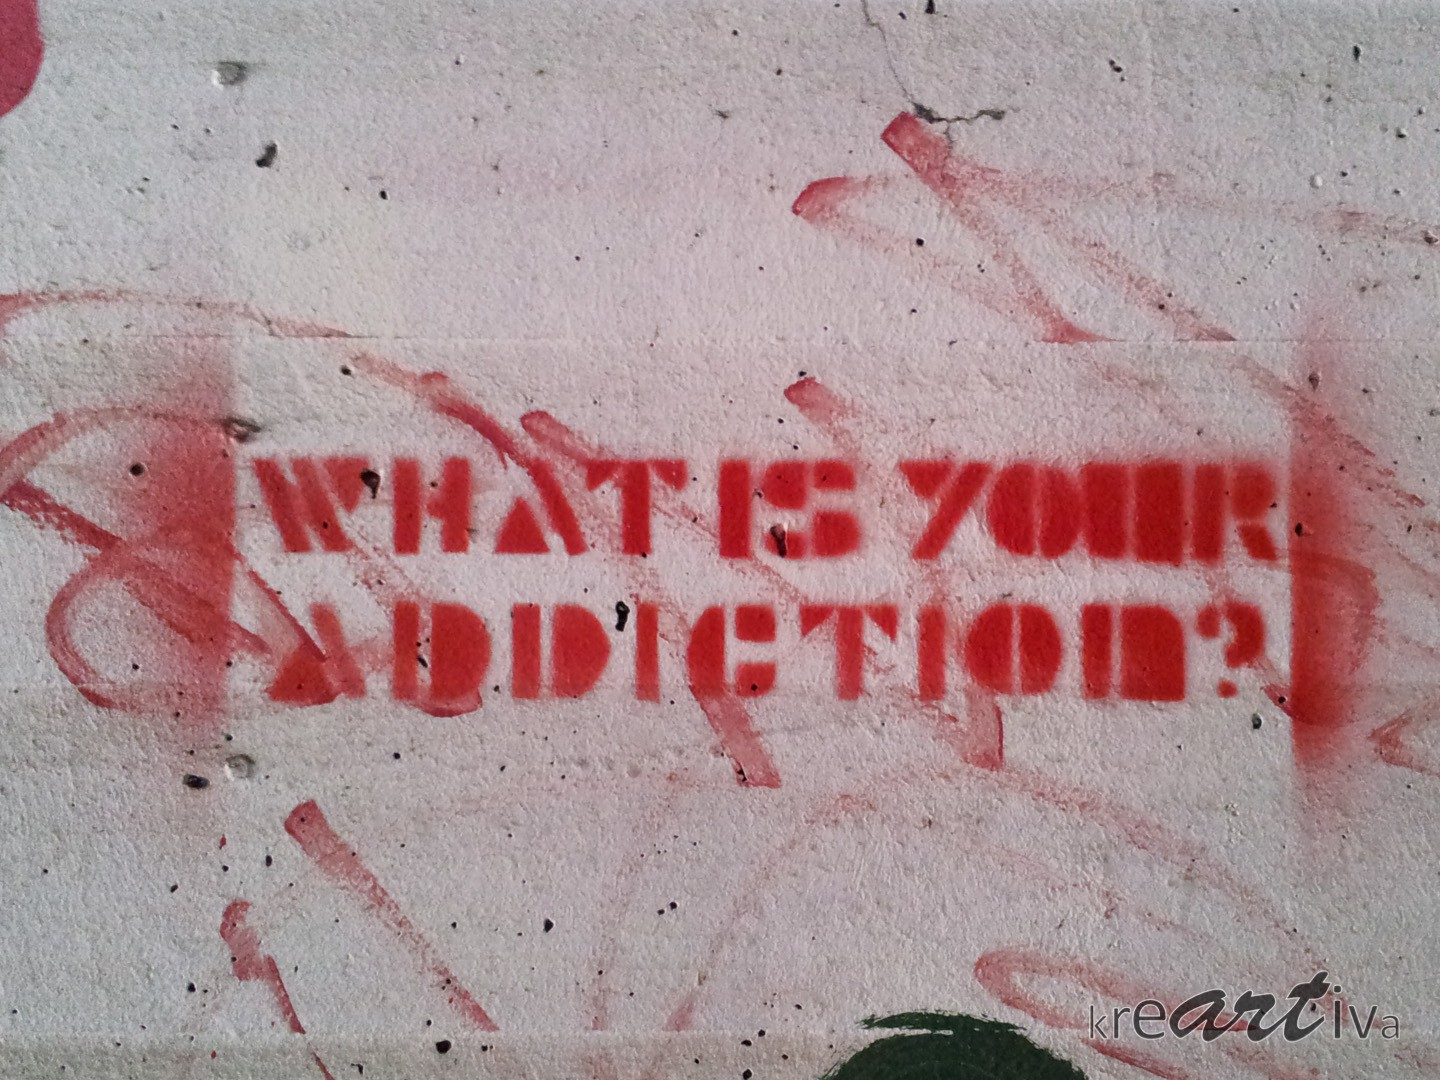 Bild: What's your addiction? Erlangen Deutschland 2014.